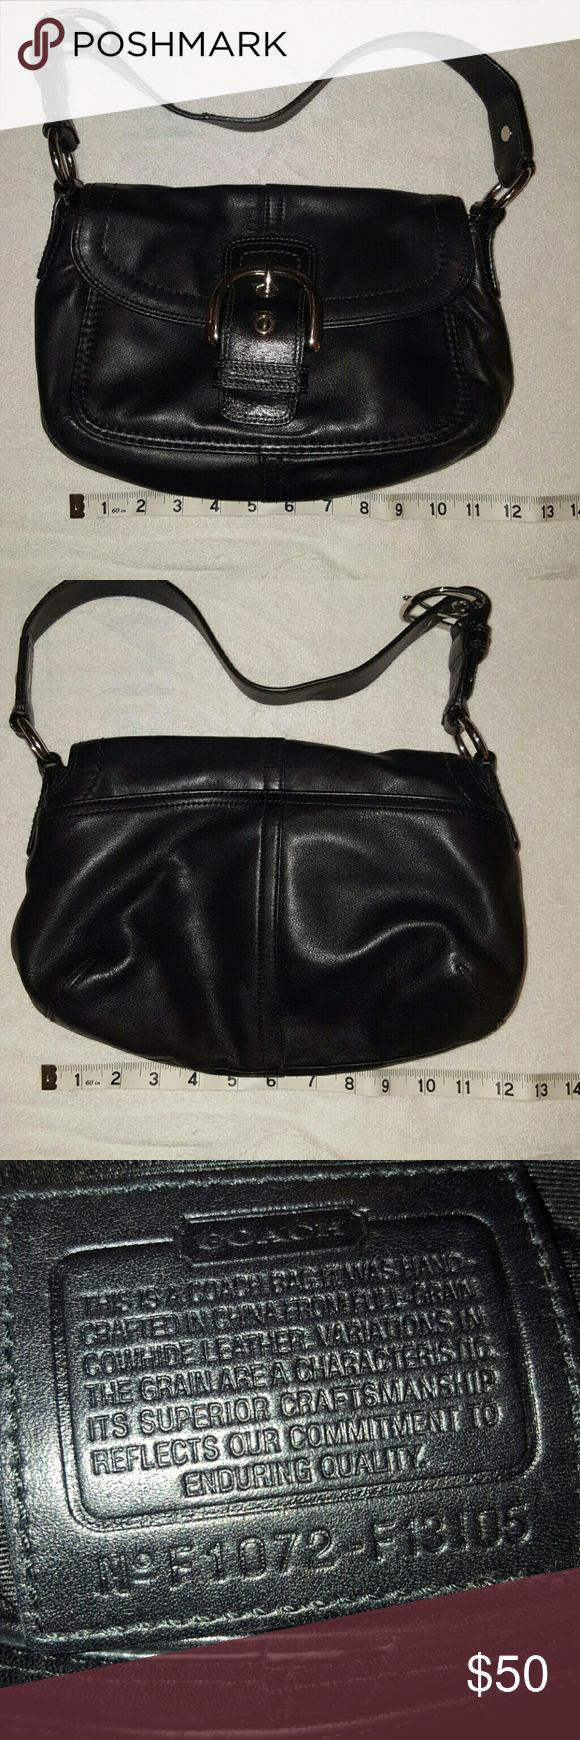 Black Coach Purse Black Coach Purse Coach Bags Shoulder Bags